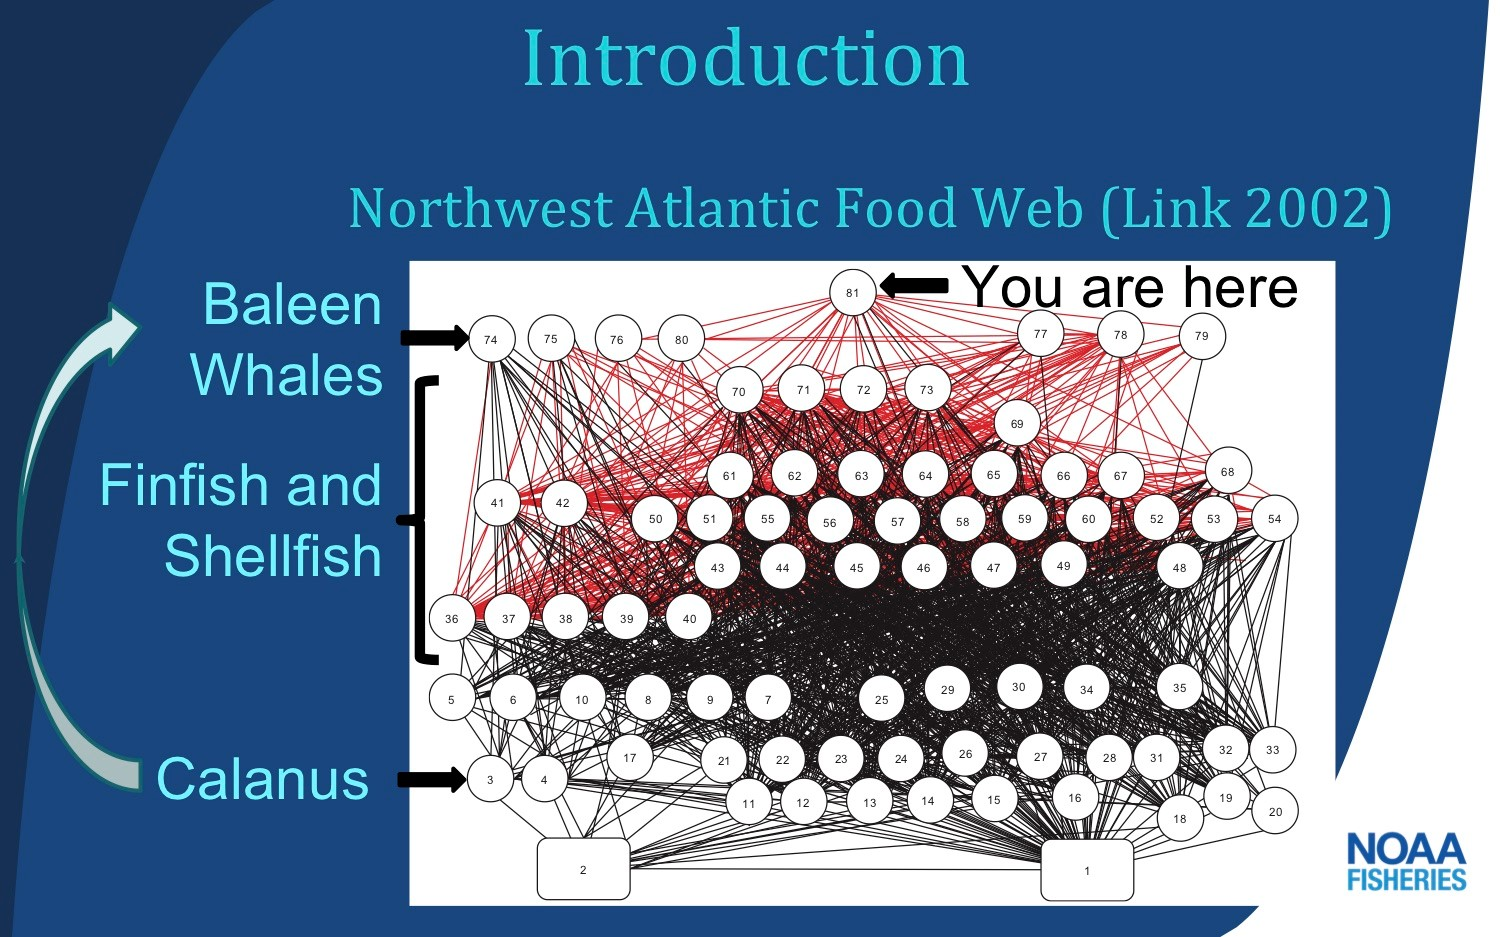 Northwest Atlantic Food Web